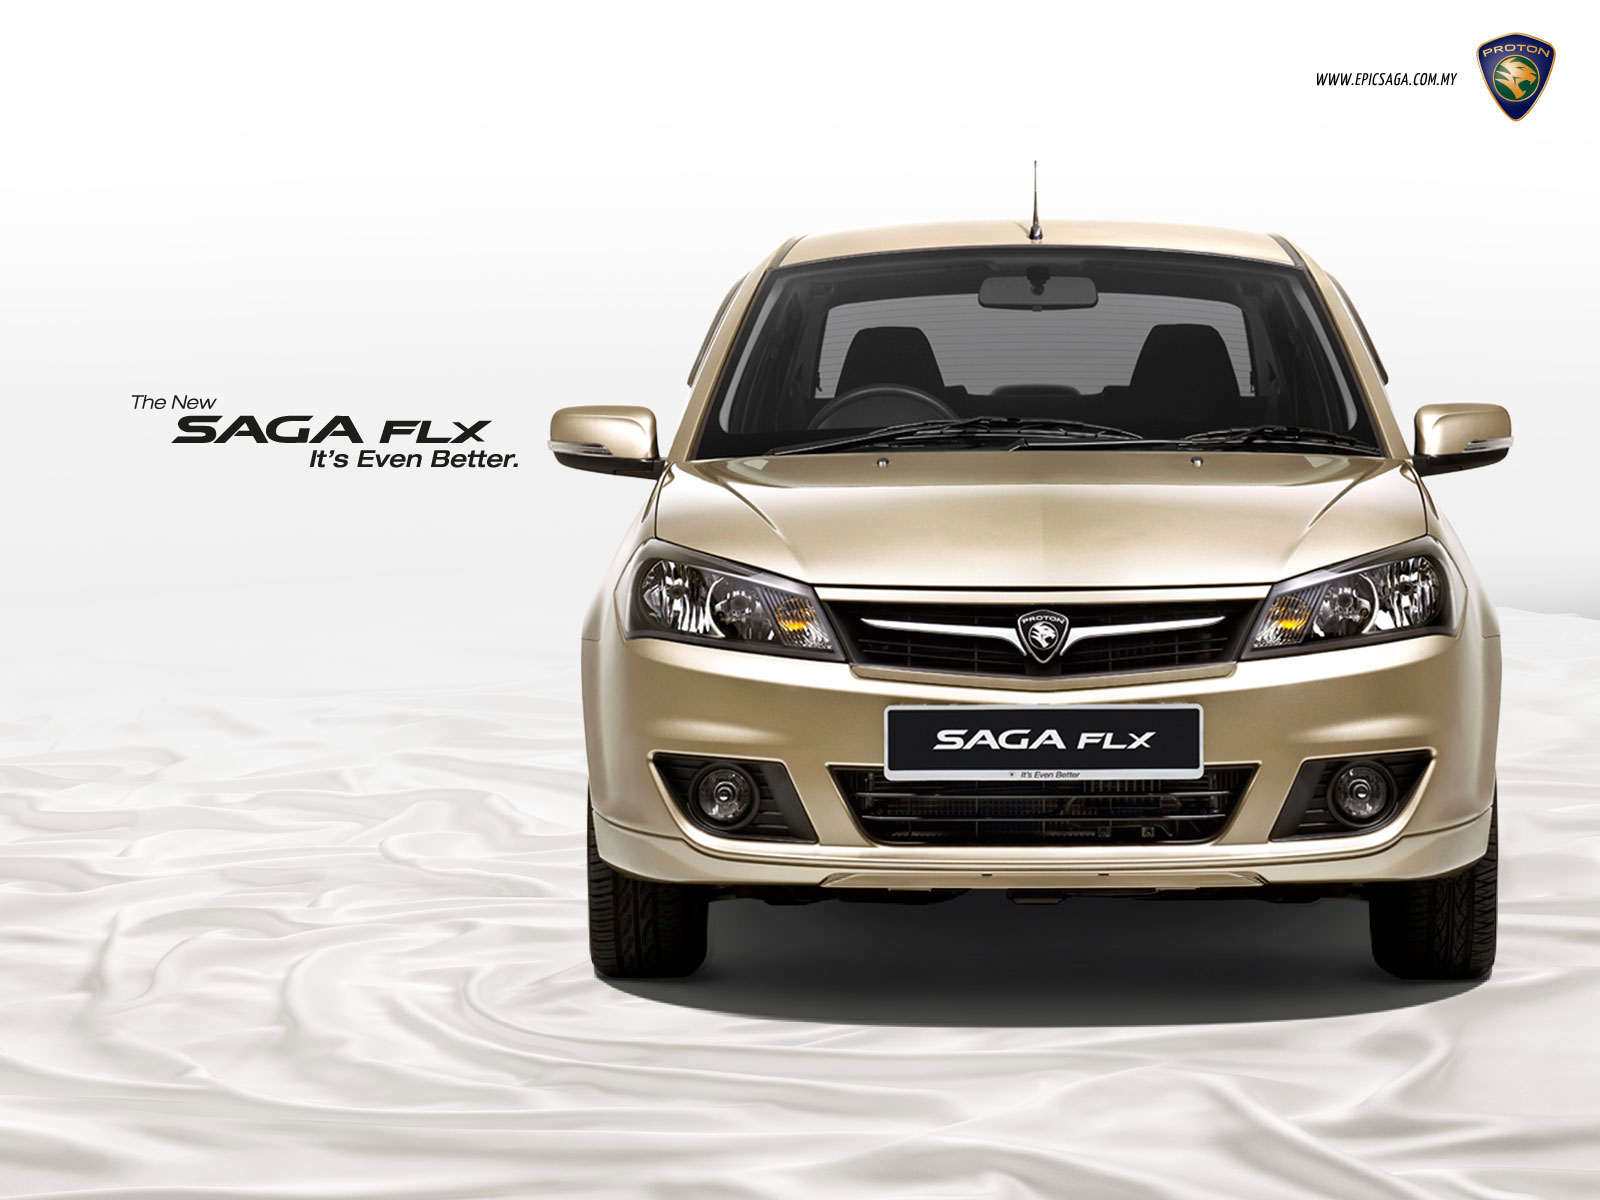 Proton Saga Flx New Price List 2012 My Best Car Dealer